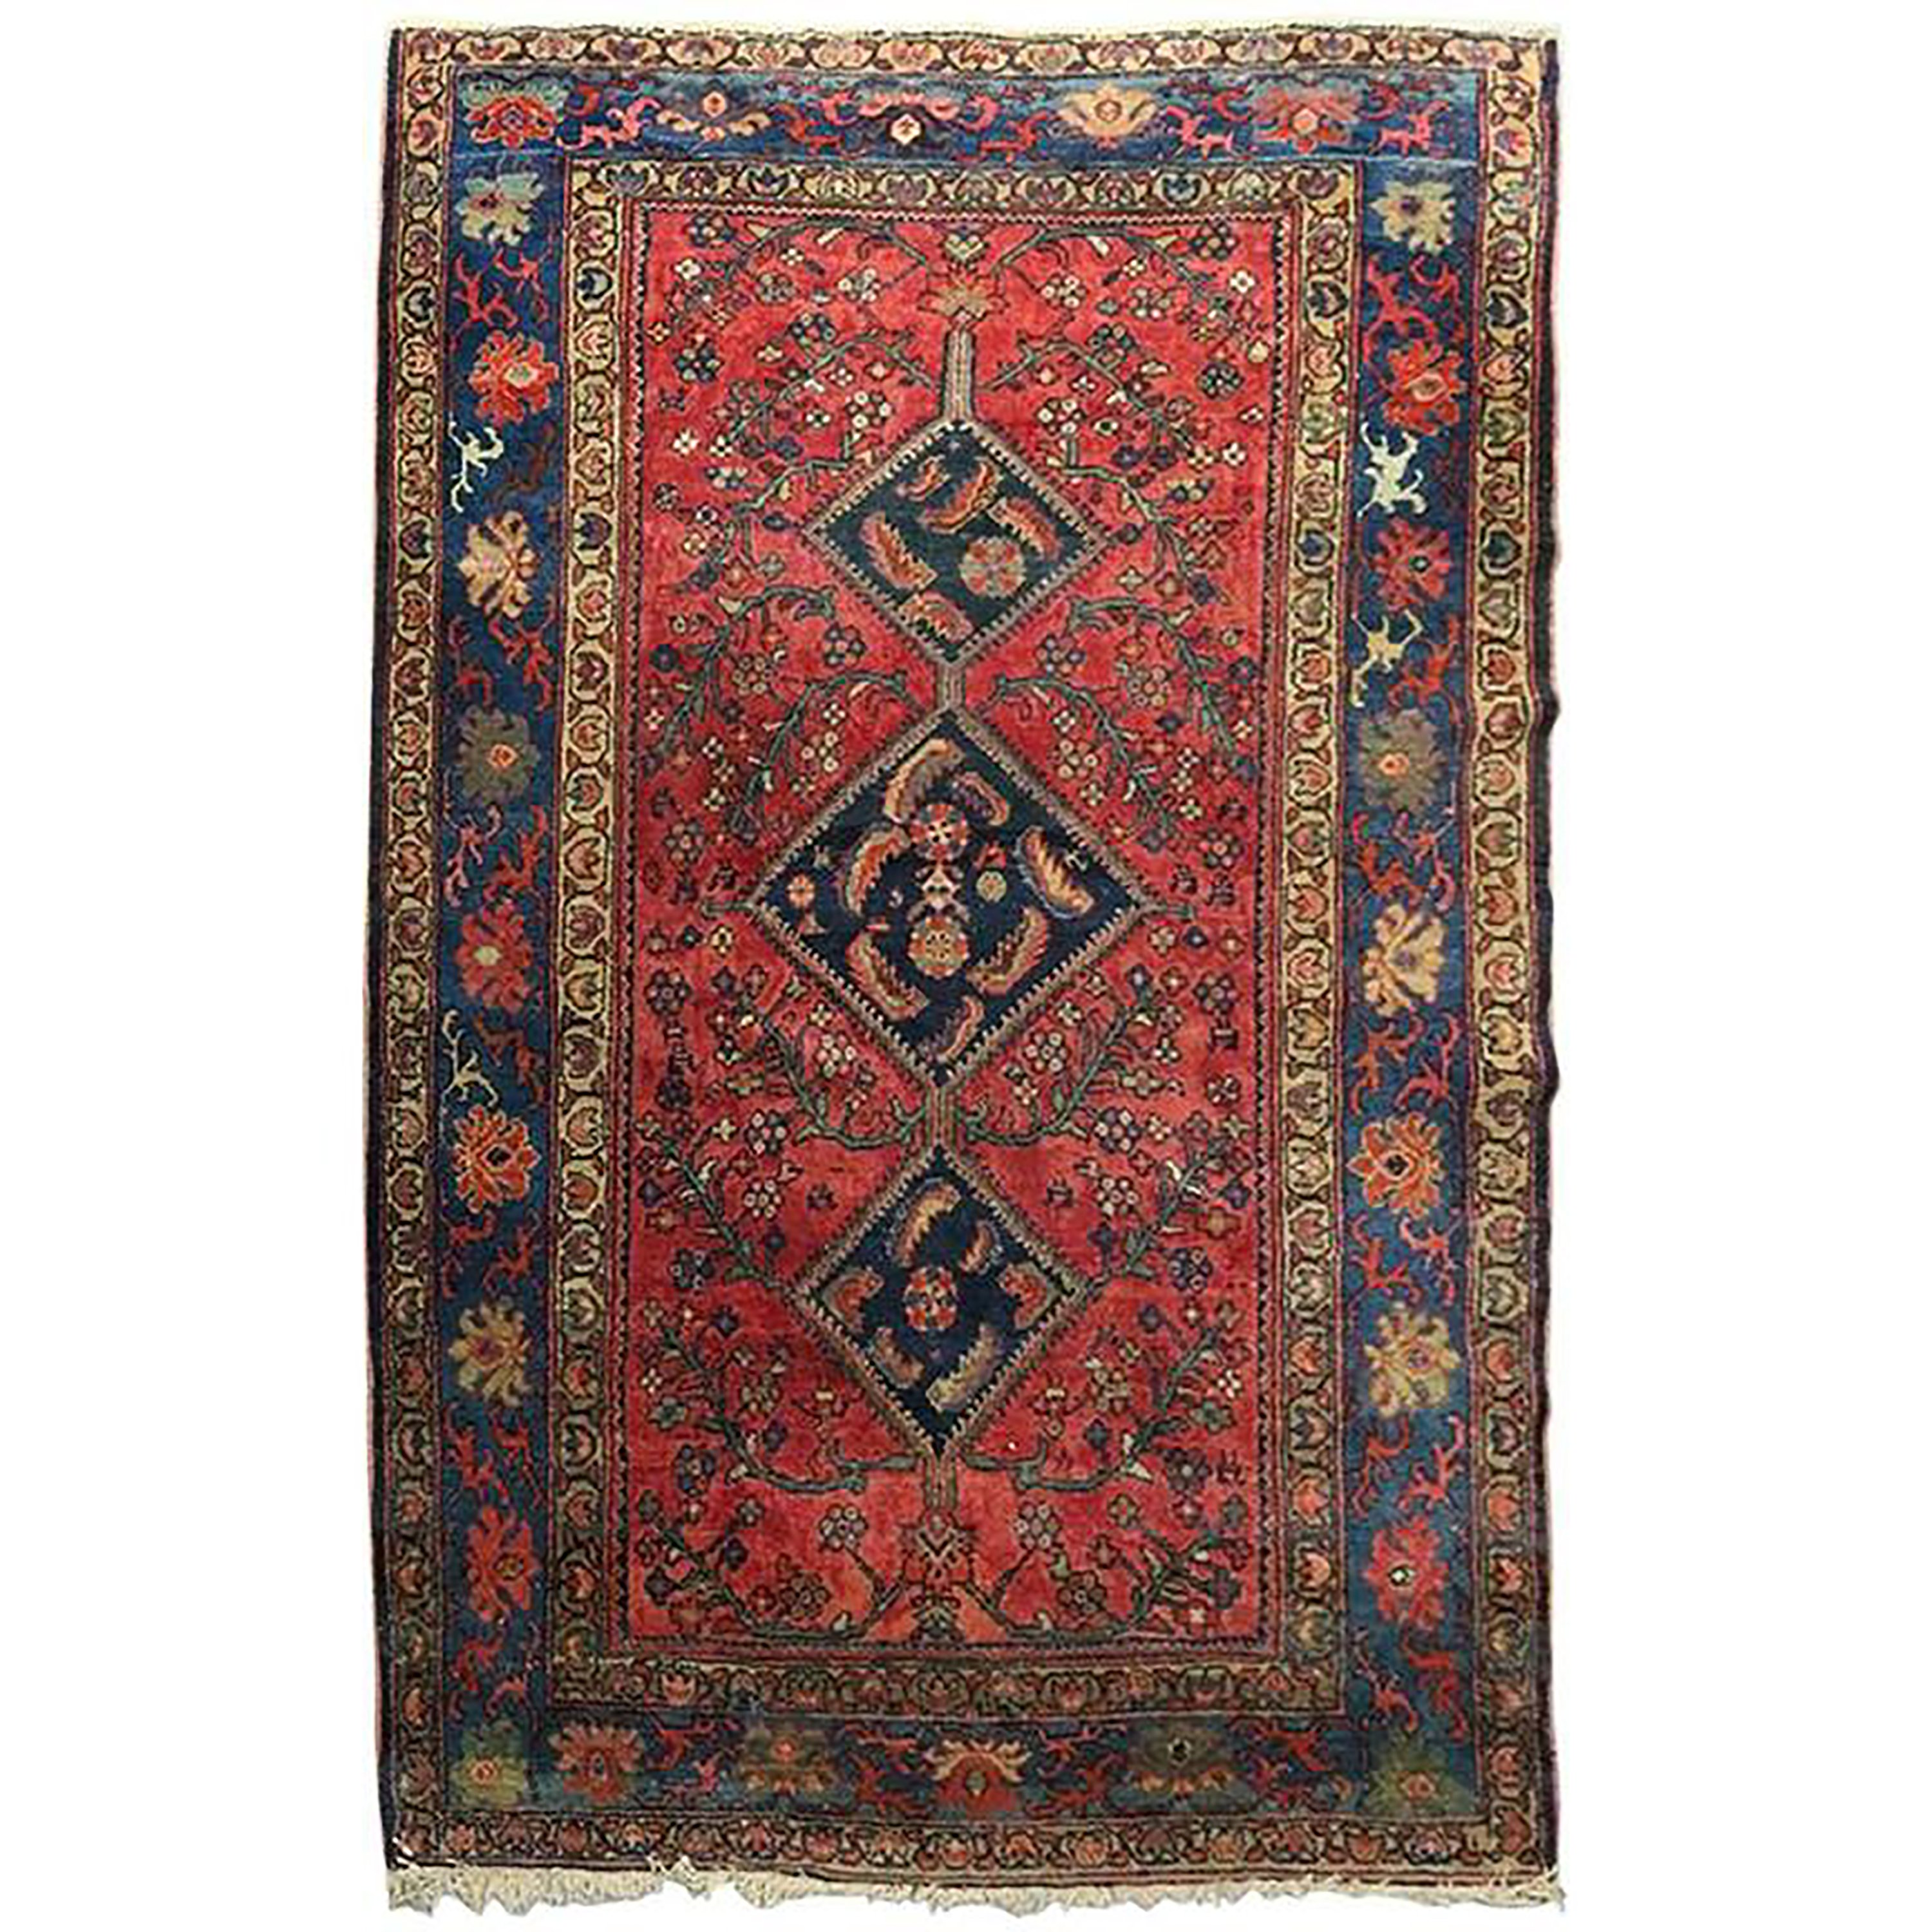 Sarouk Persian Oriental Rug Carpet Decor